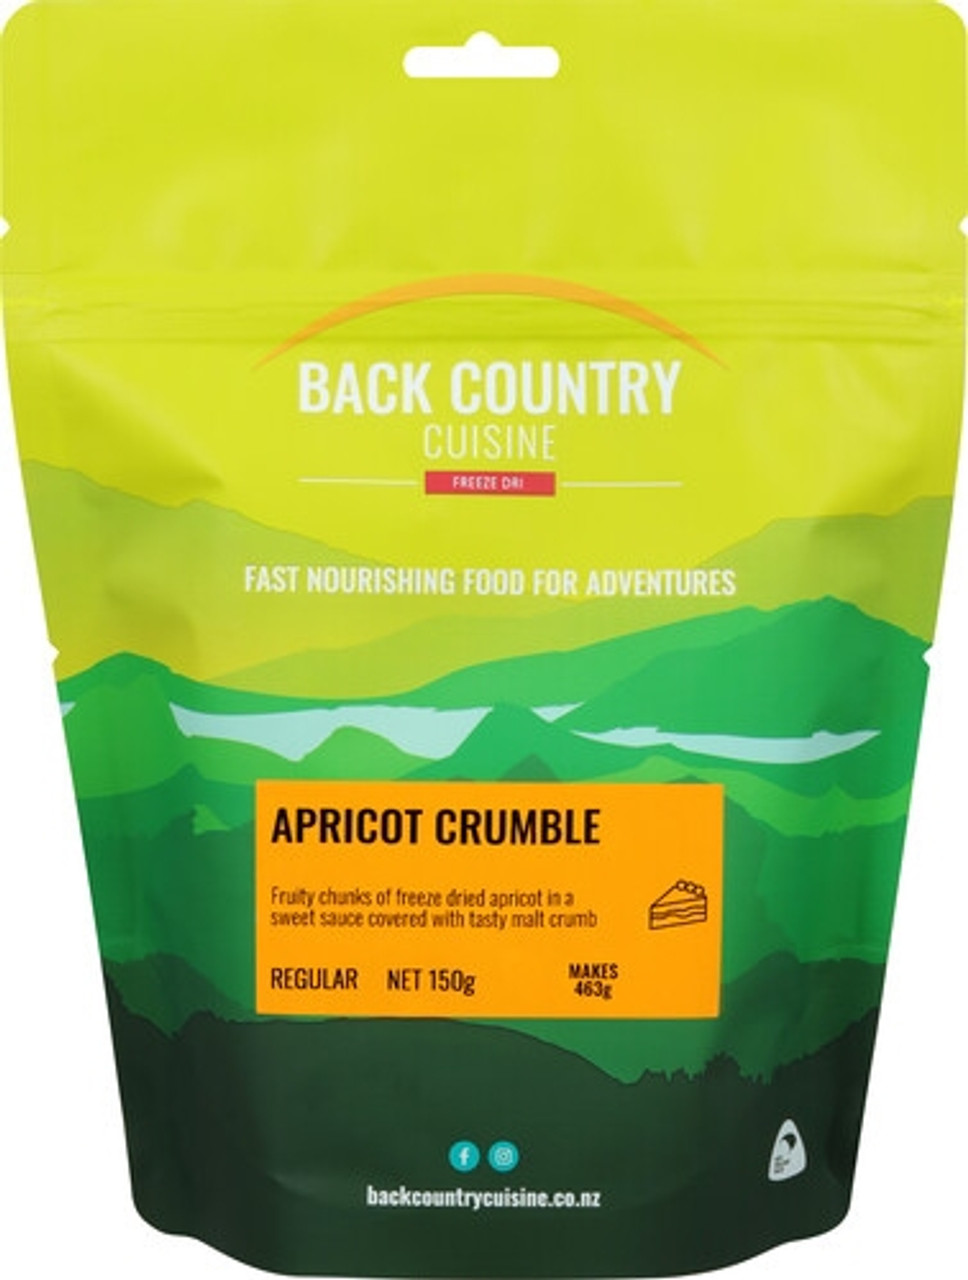 Back Country Cuisine Desert: Apricot Crumble Online at Mountain Mail Order South Africa